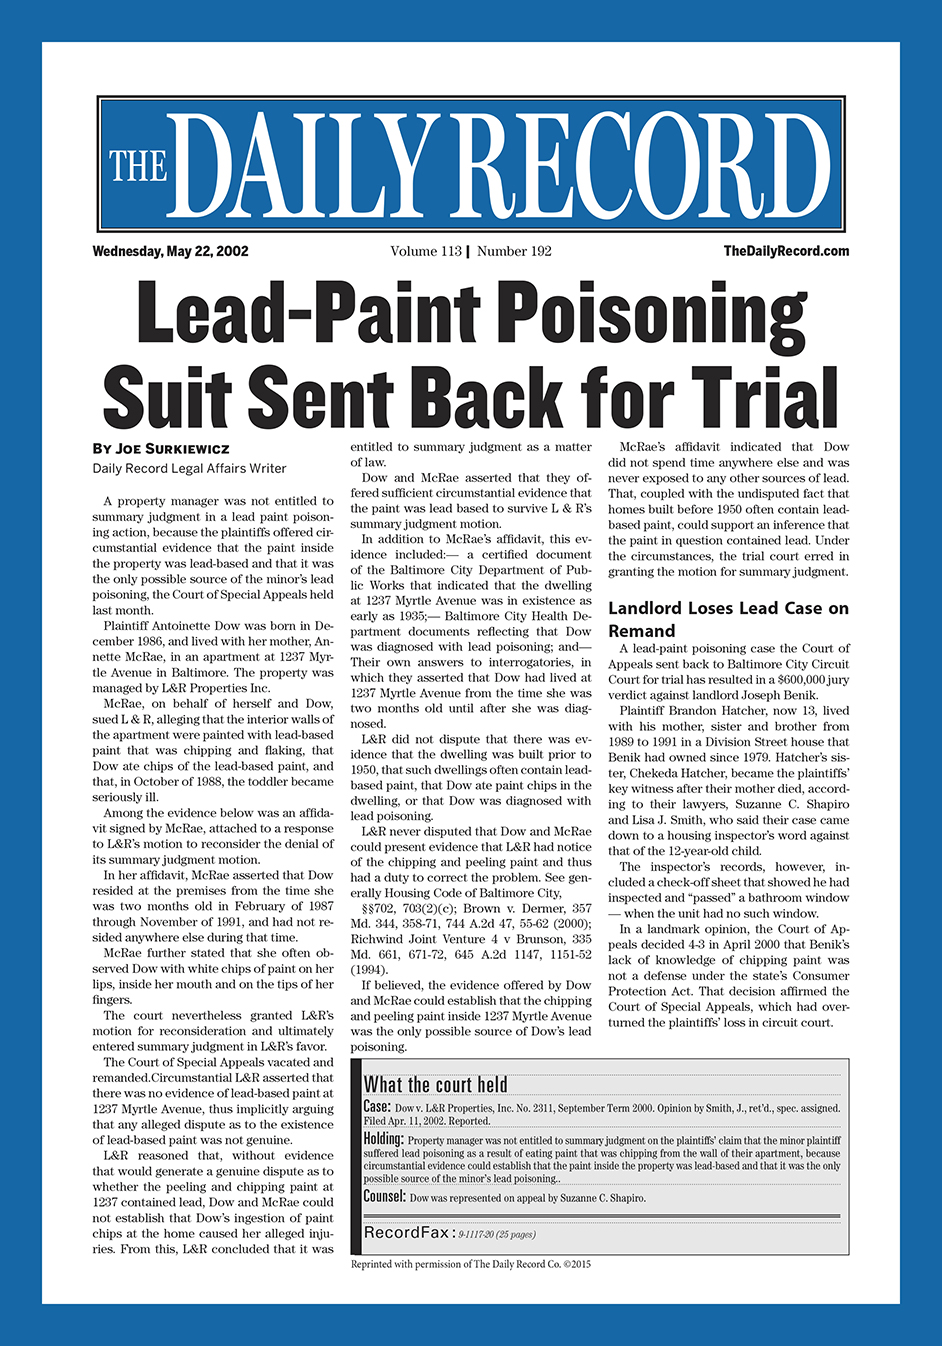 Lead-Paint poisoning suit sent back for trial